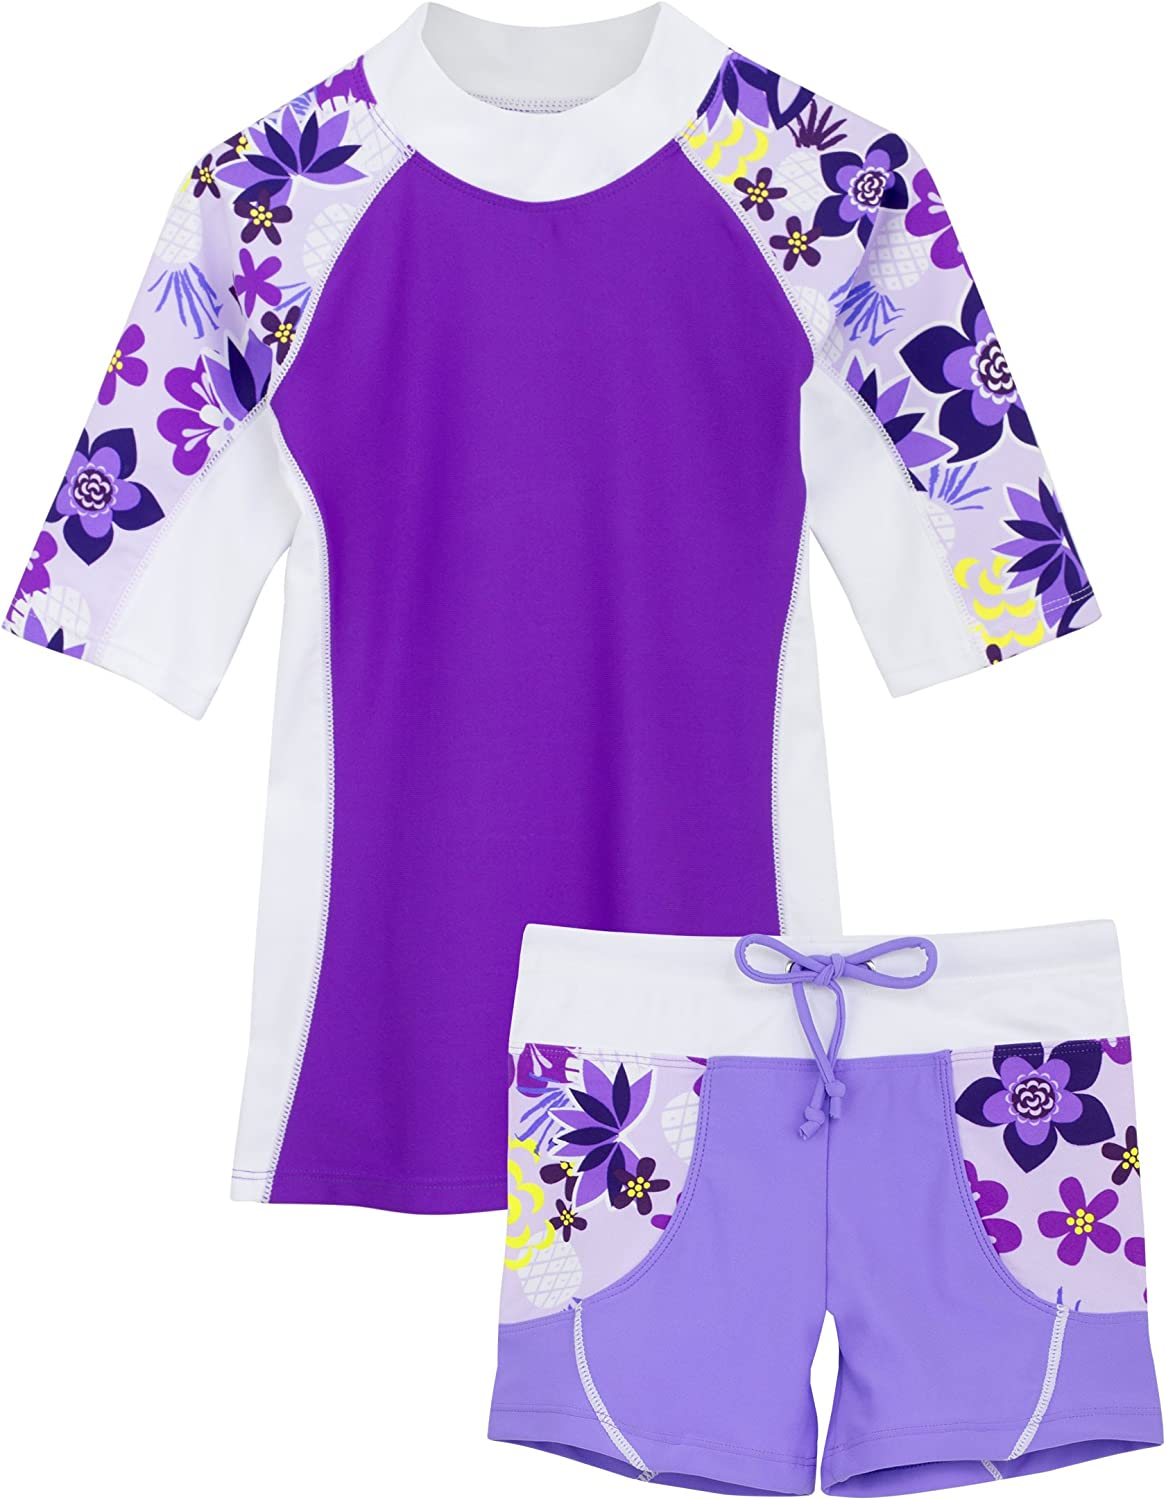 Girls Two-Piece Swimwear Short-Sleeved Shirt and Shorts Swimsuit Sun Protection 50+